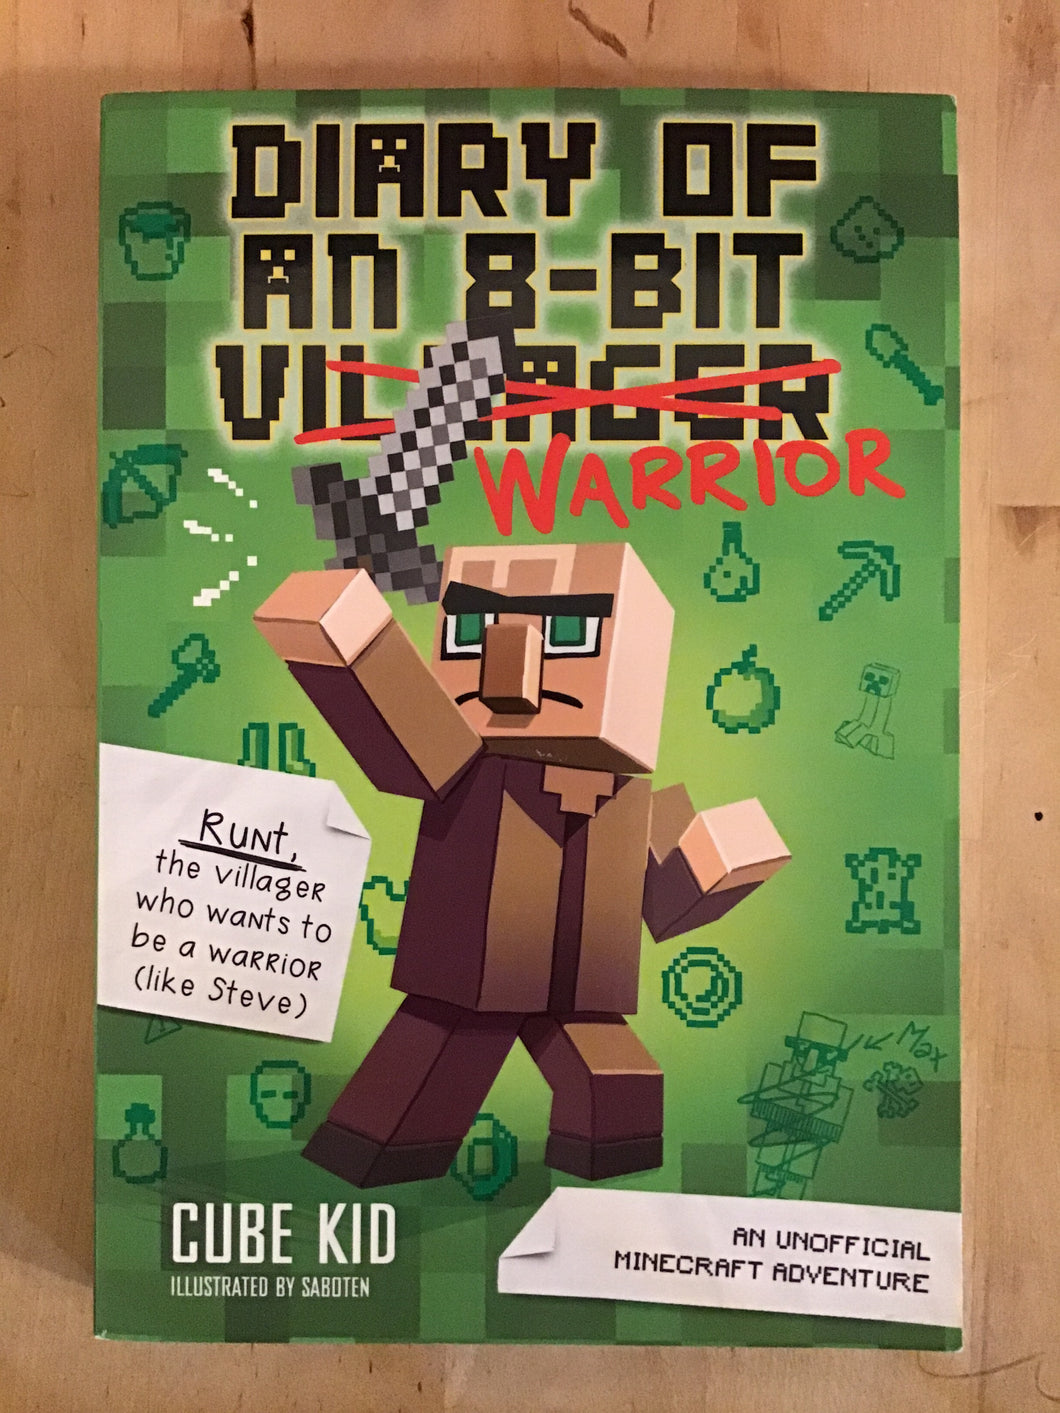 Diary of an 8-Bit Warrior